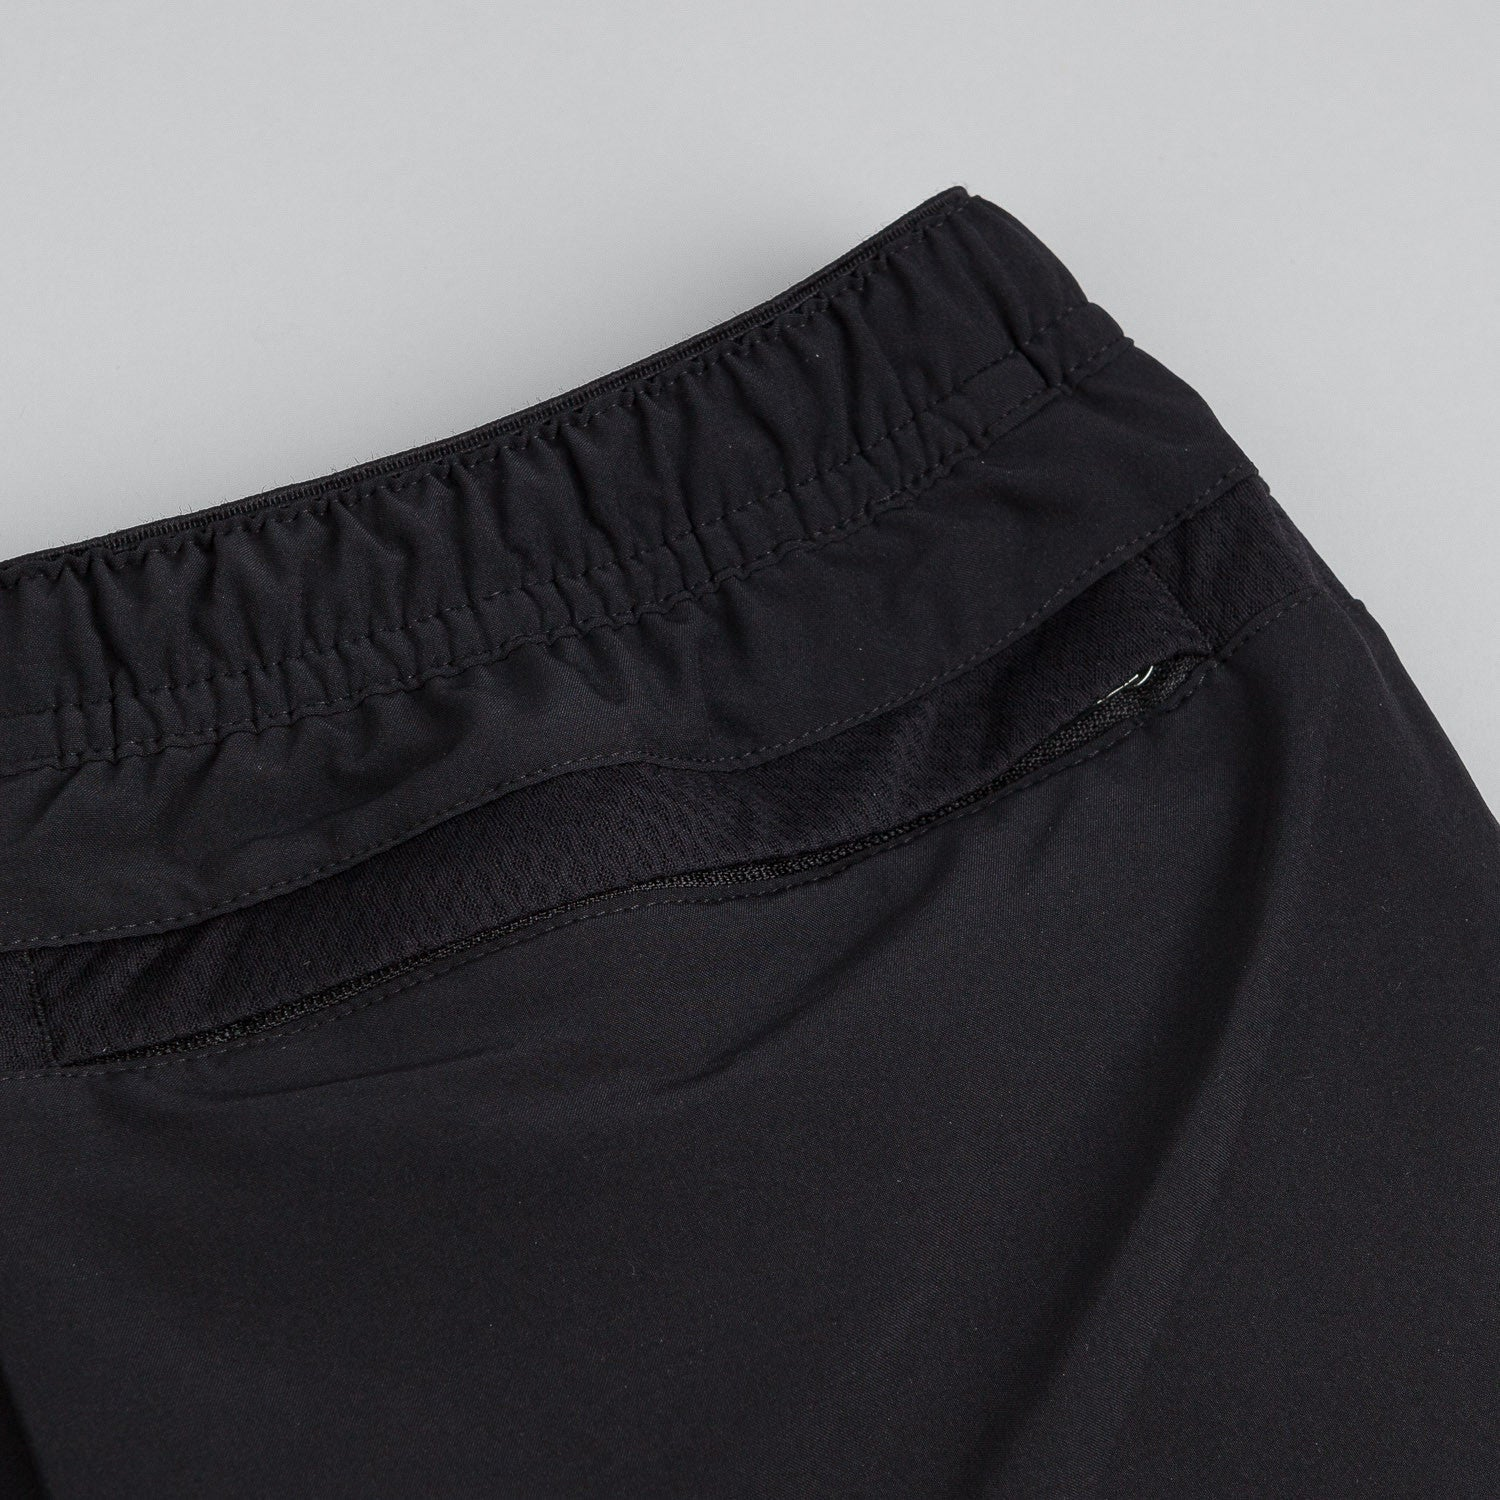 Patagonia Nine Trails Shorts - Black